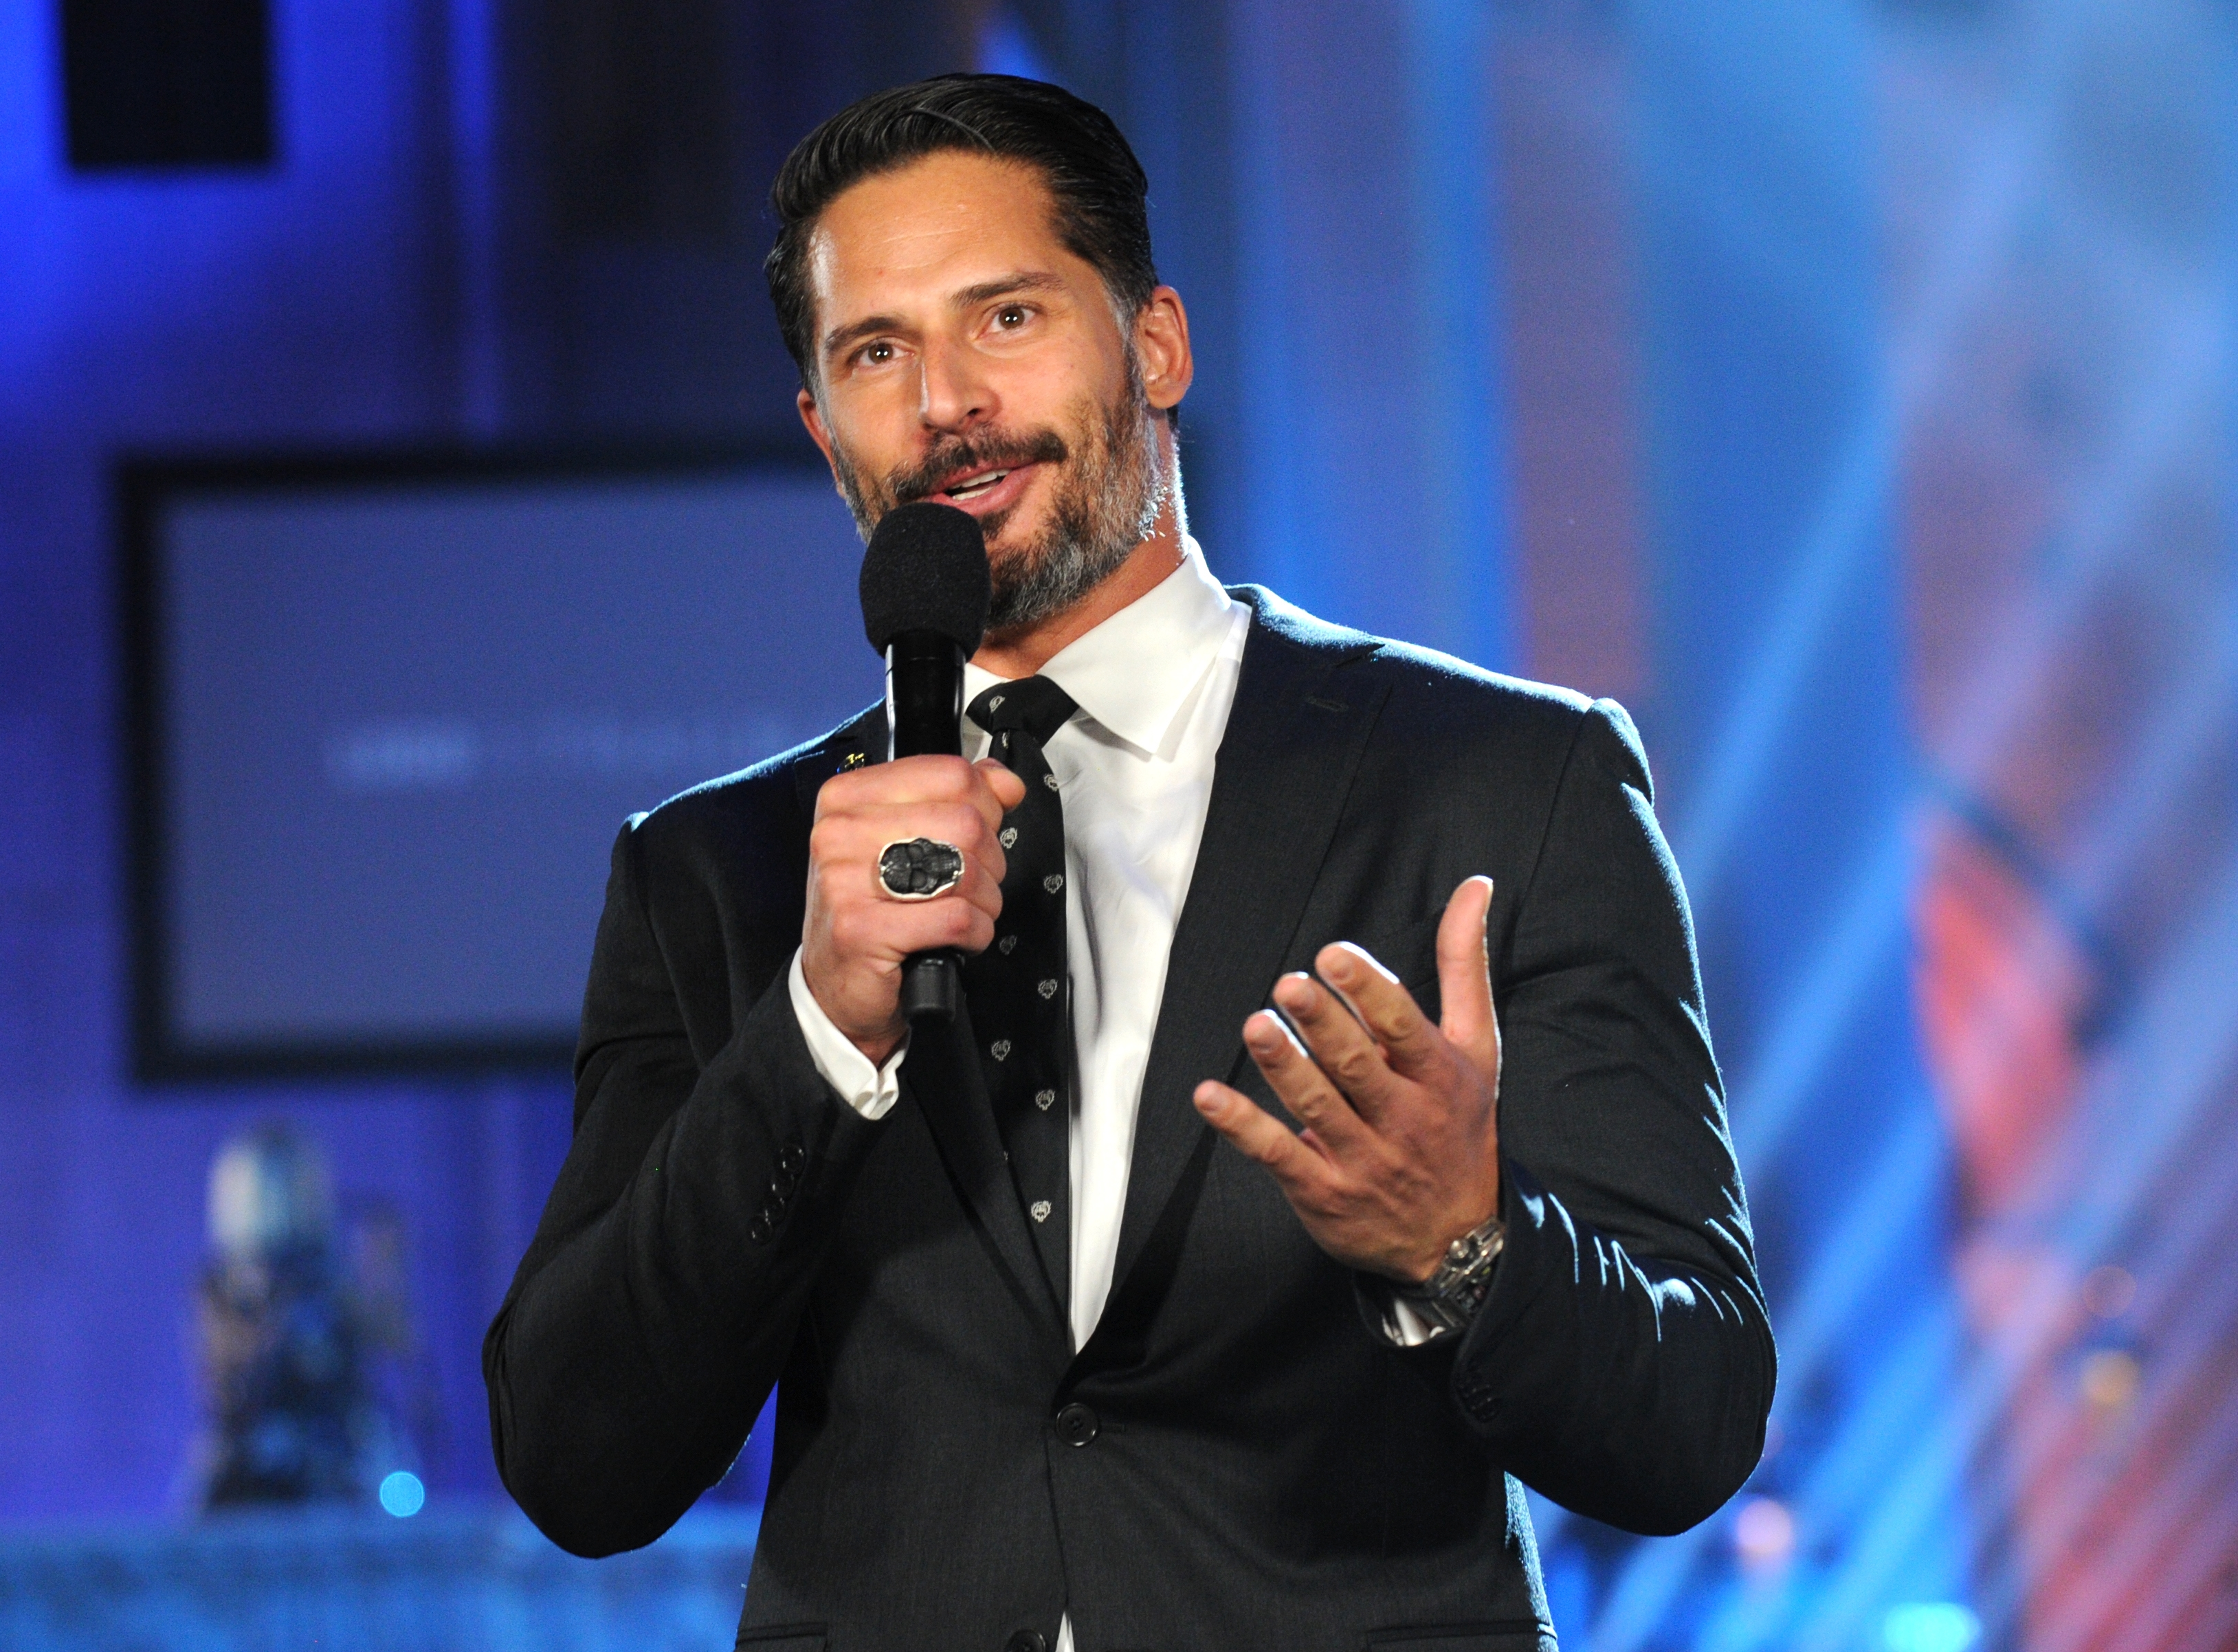 Actor Joe Manganiello, who announced his split from girlfriend Bridget Peters in March, is Hollywood's hottest bachelor, according to People magazine.